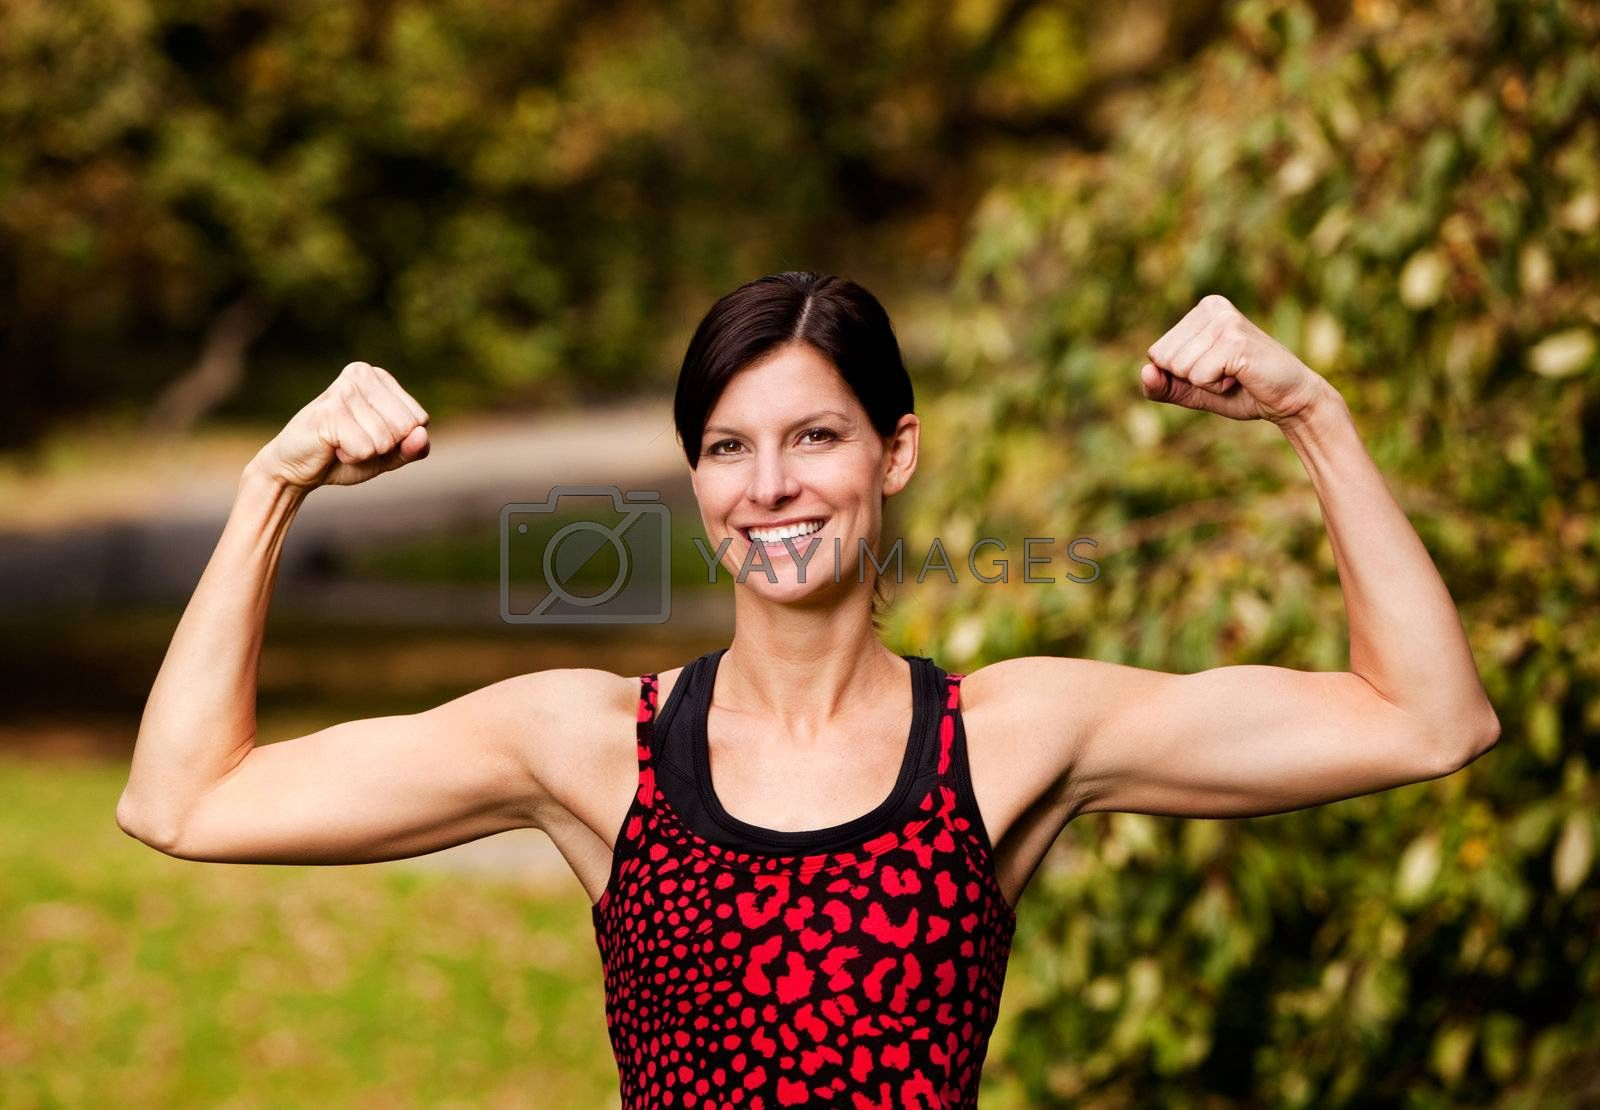 A female fitness model flexing her biceps